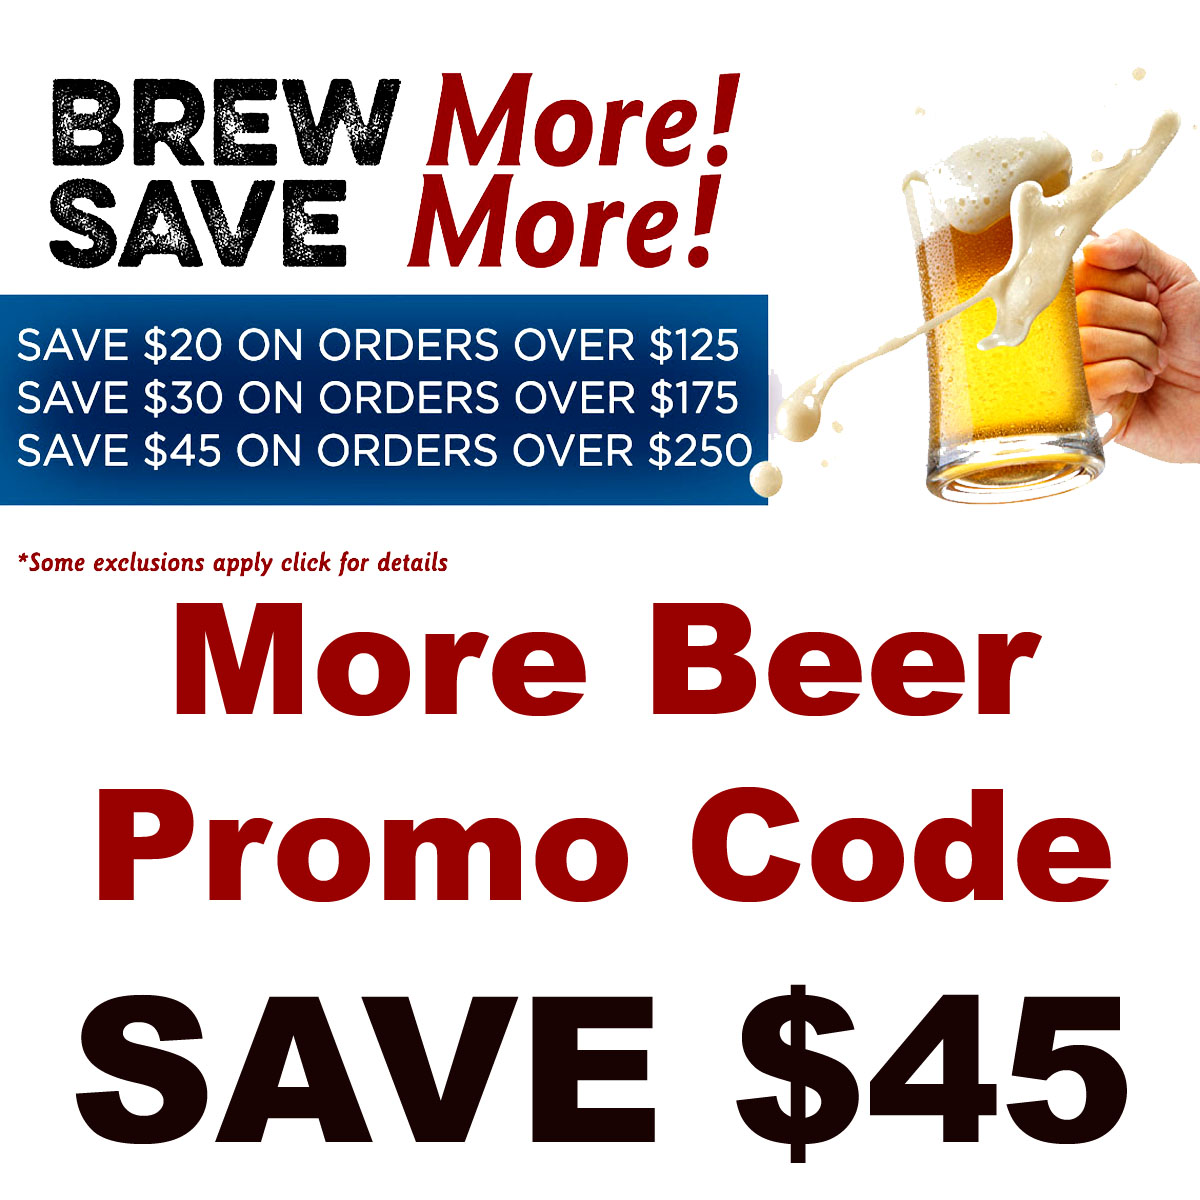 Home Wine Making Coupon Codes for Save as much as $45 on your home wine making purchase with this MoreBeer.com promo code Coupon Code